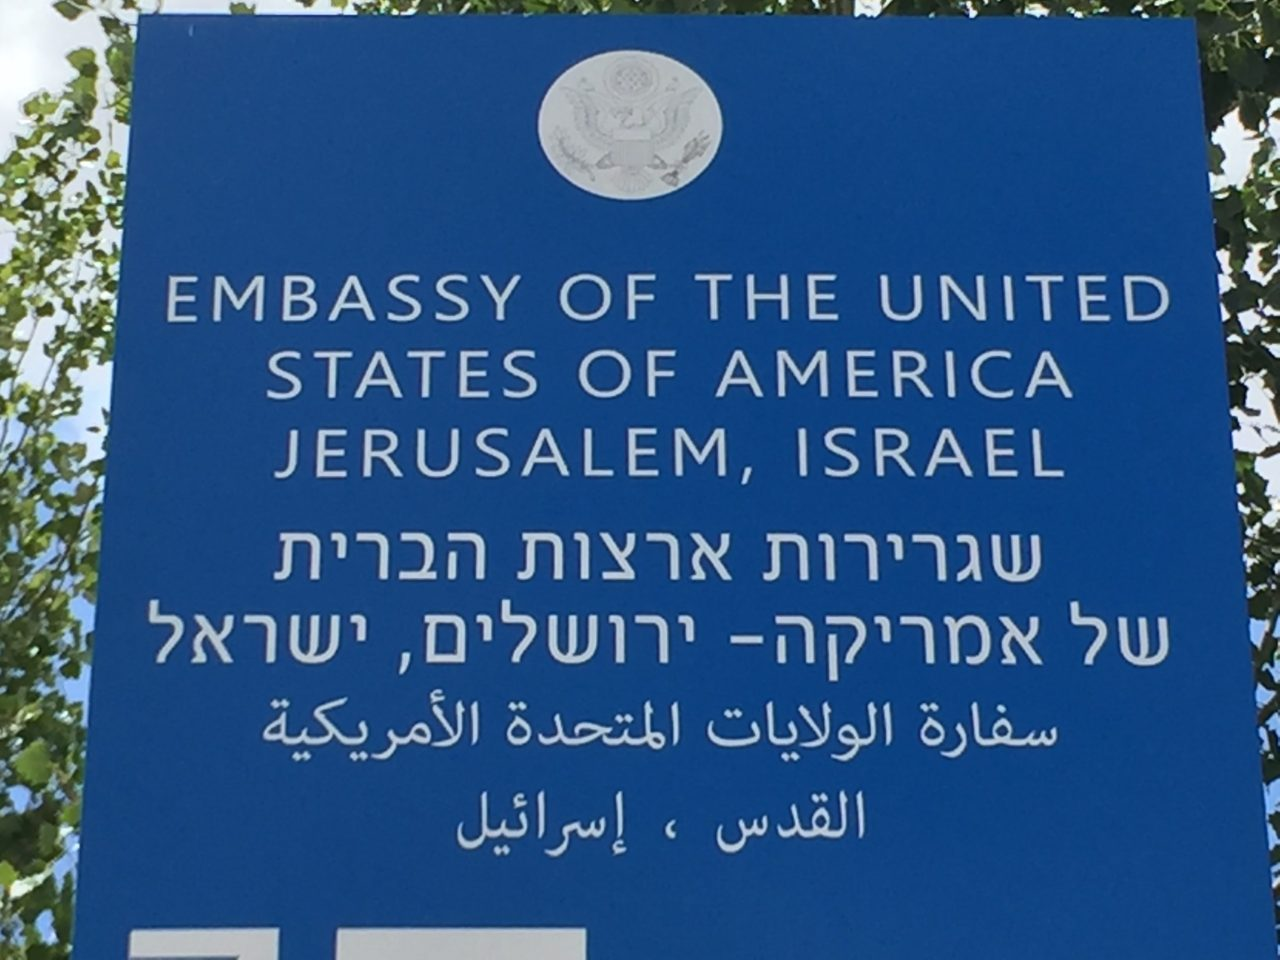 Caroline Glick: The Jerusalem Embassy and the Triumph of Truth | Breitbart